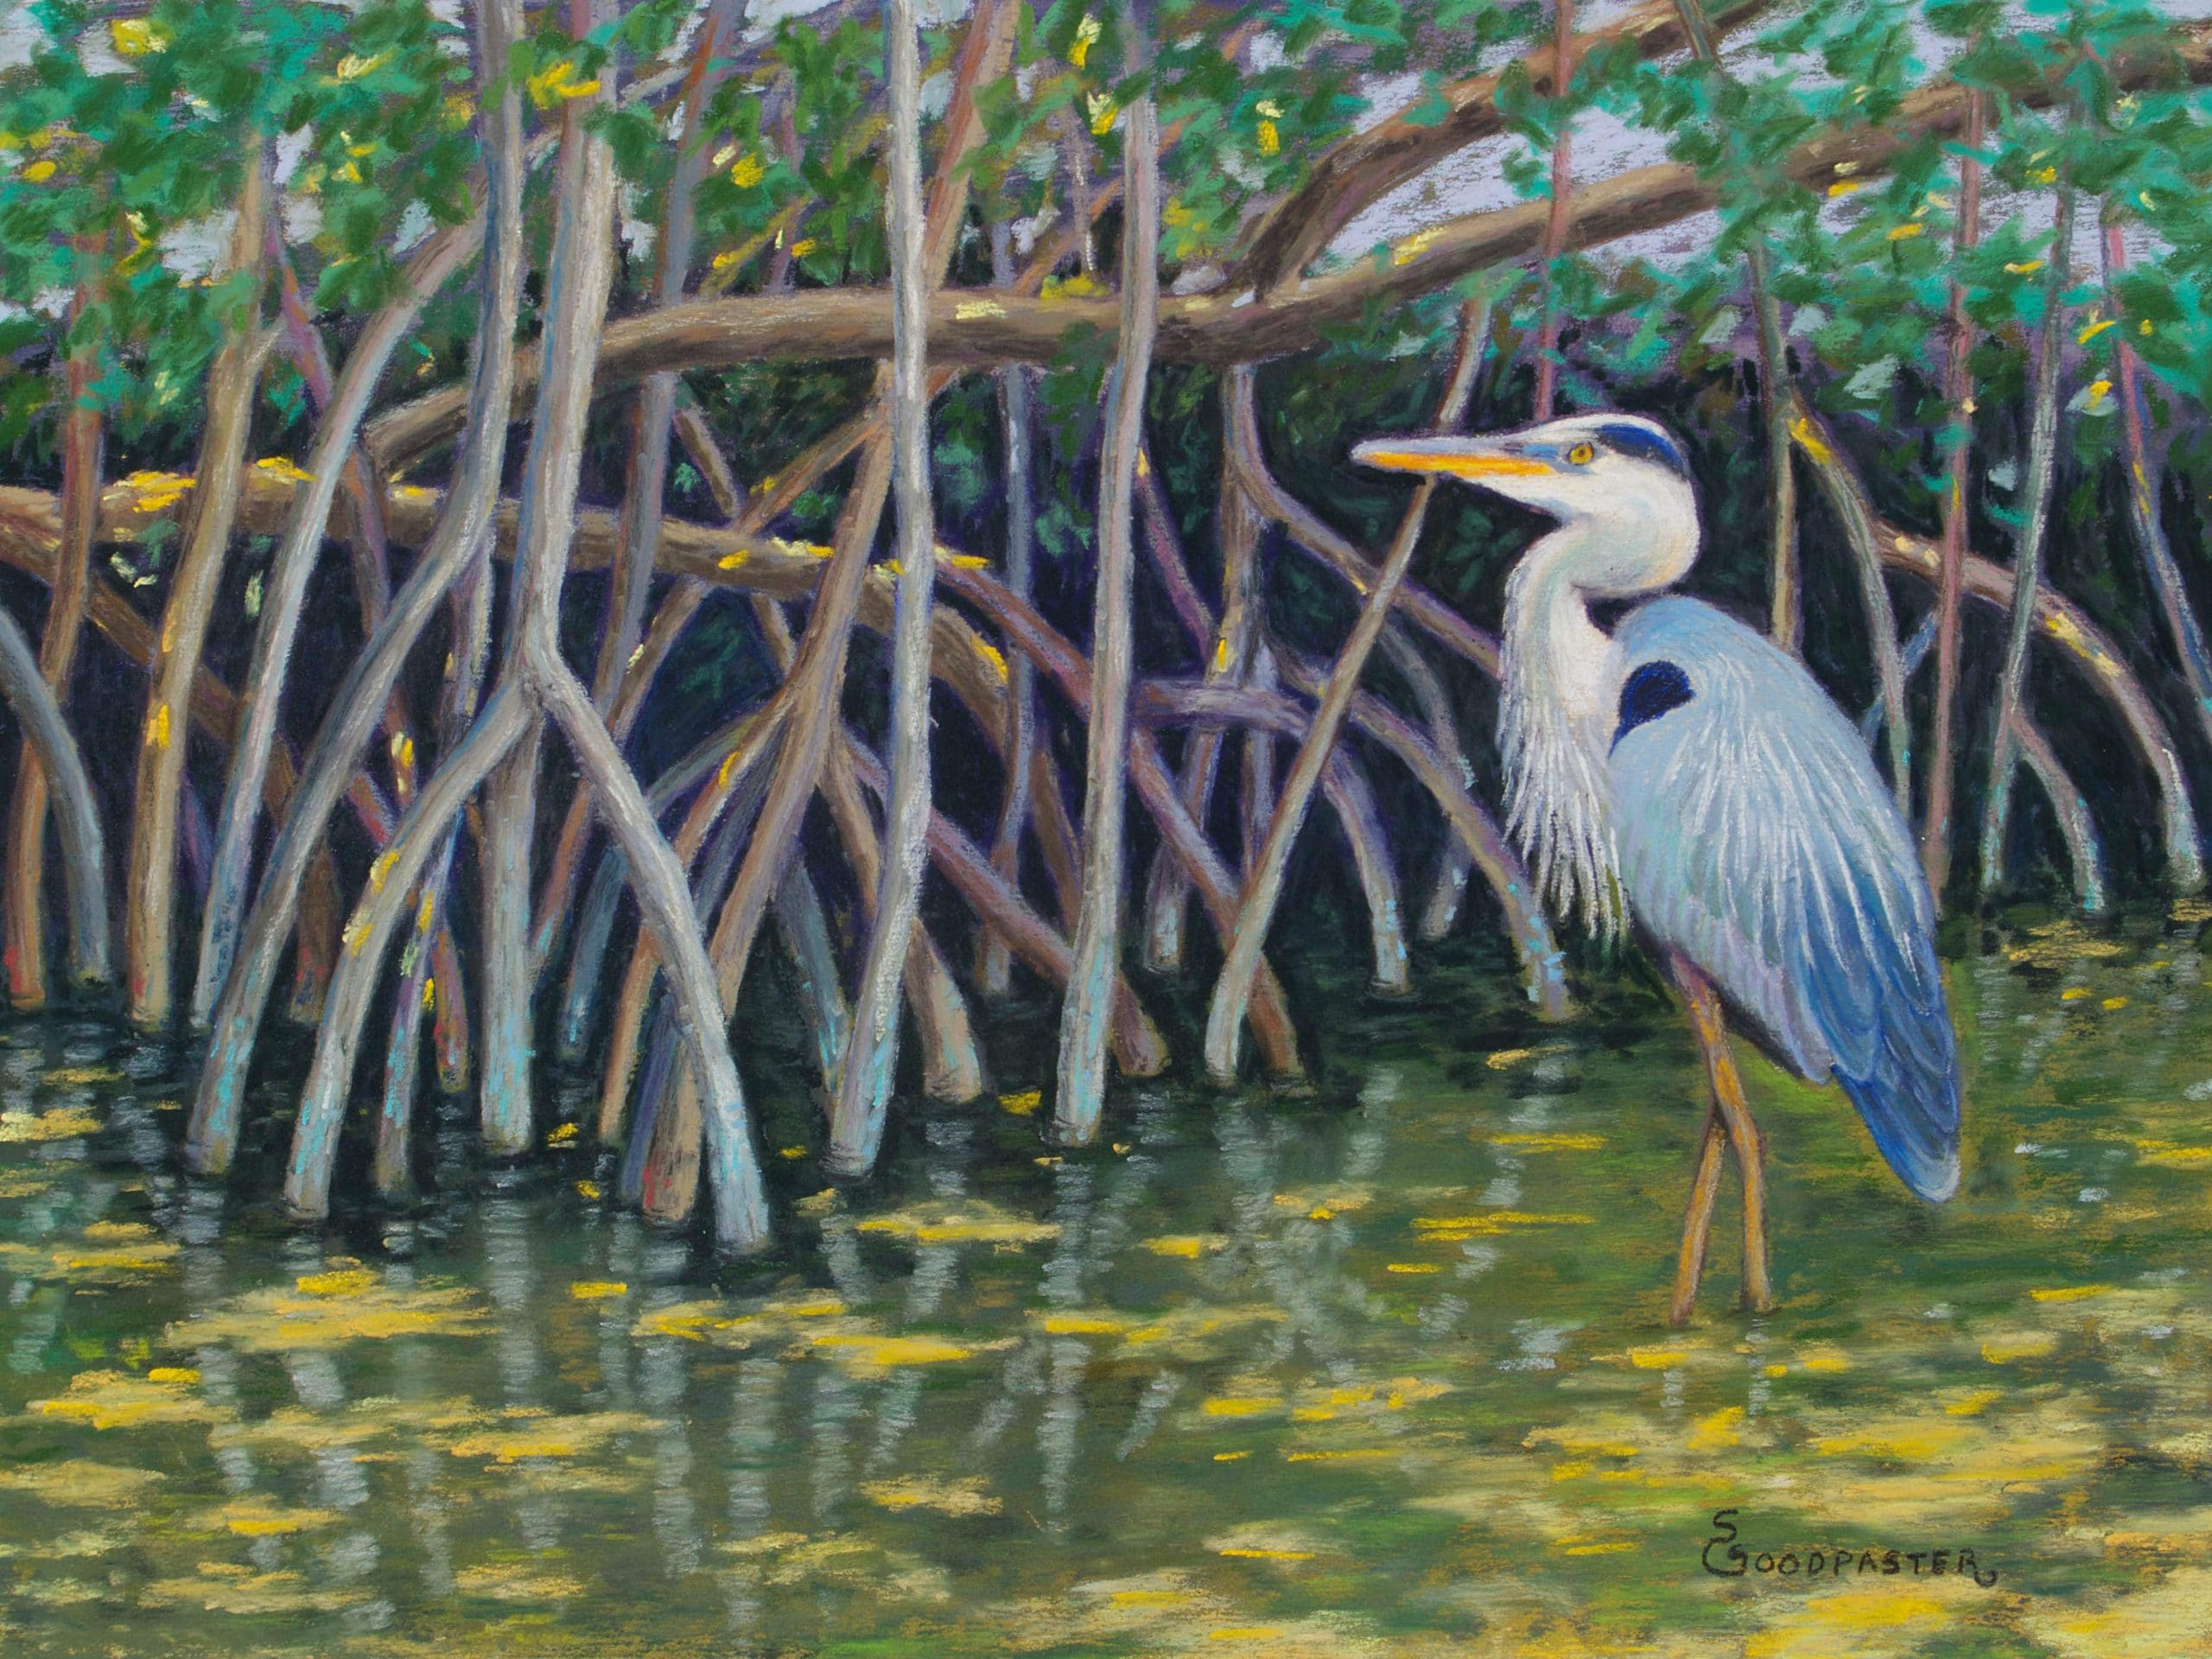 Blue Heron Florida by Glenda Sue Goodpaster